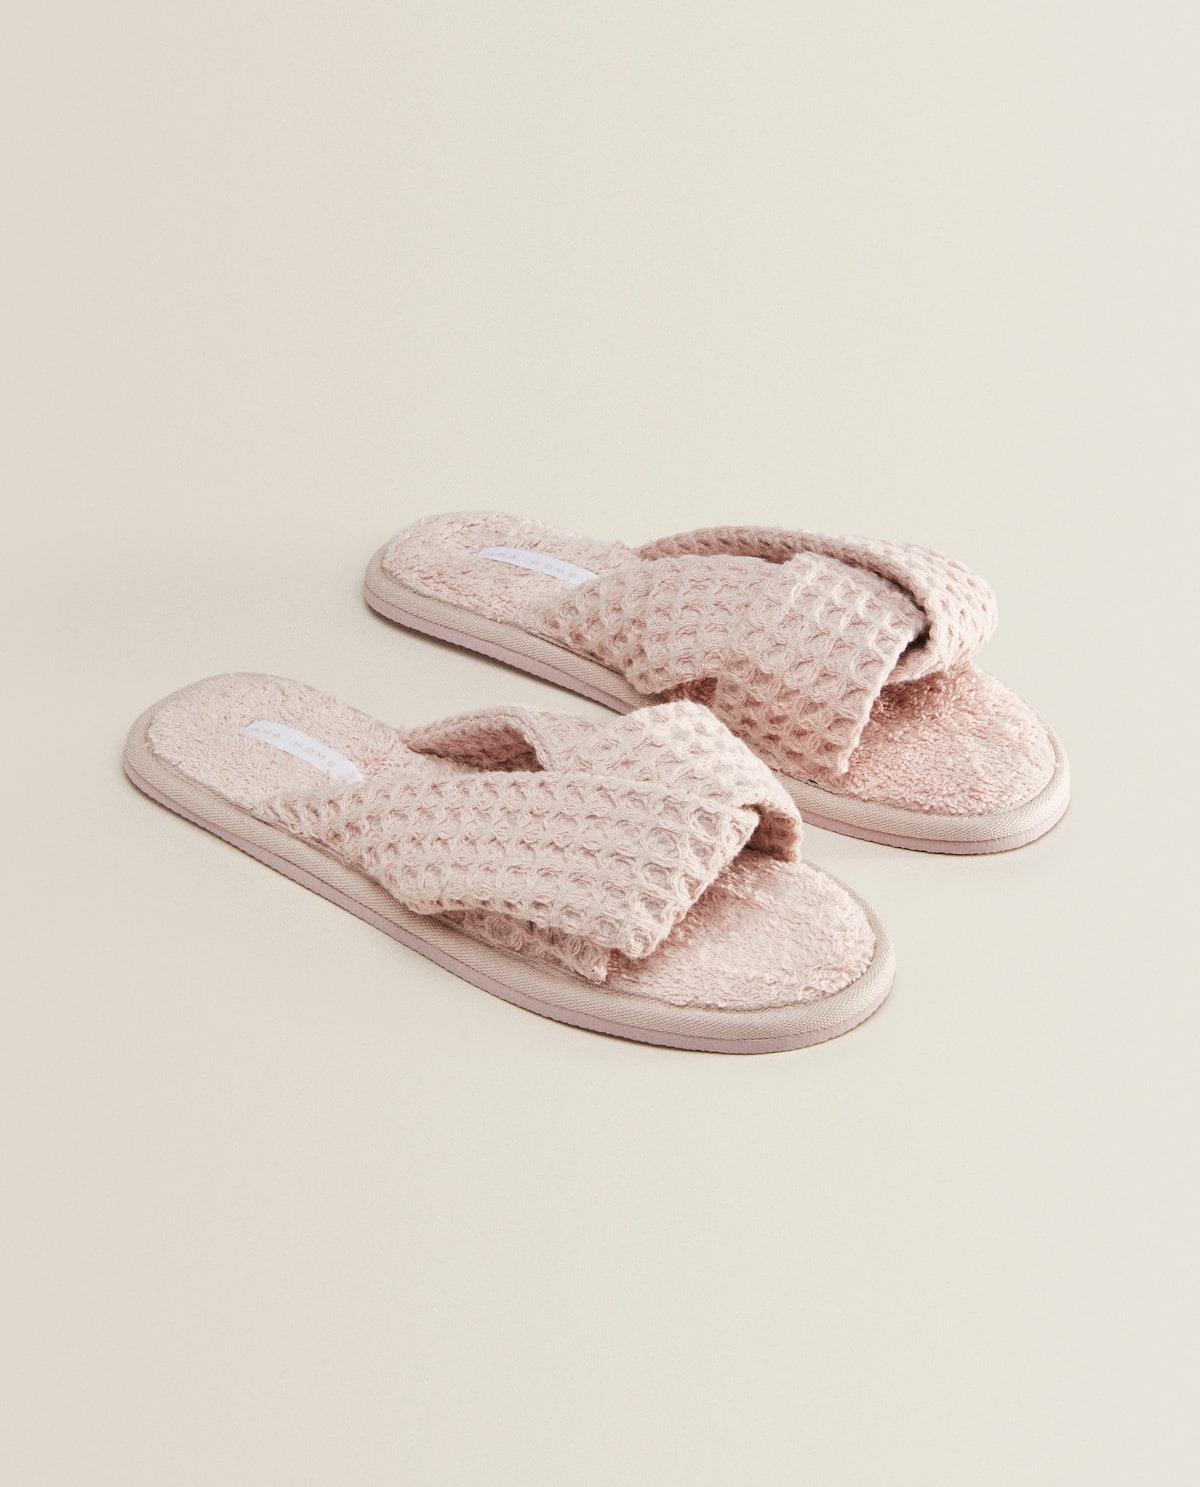 Zapatillas de estar por casa de Zara Home